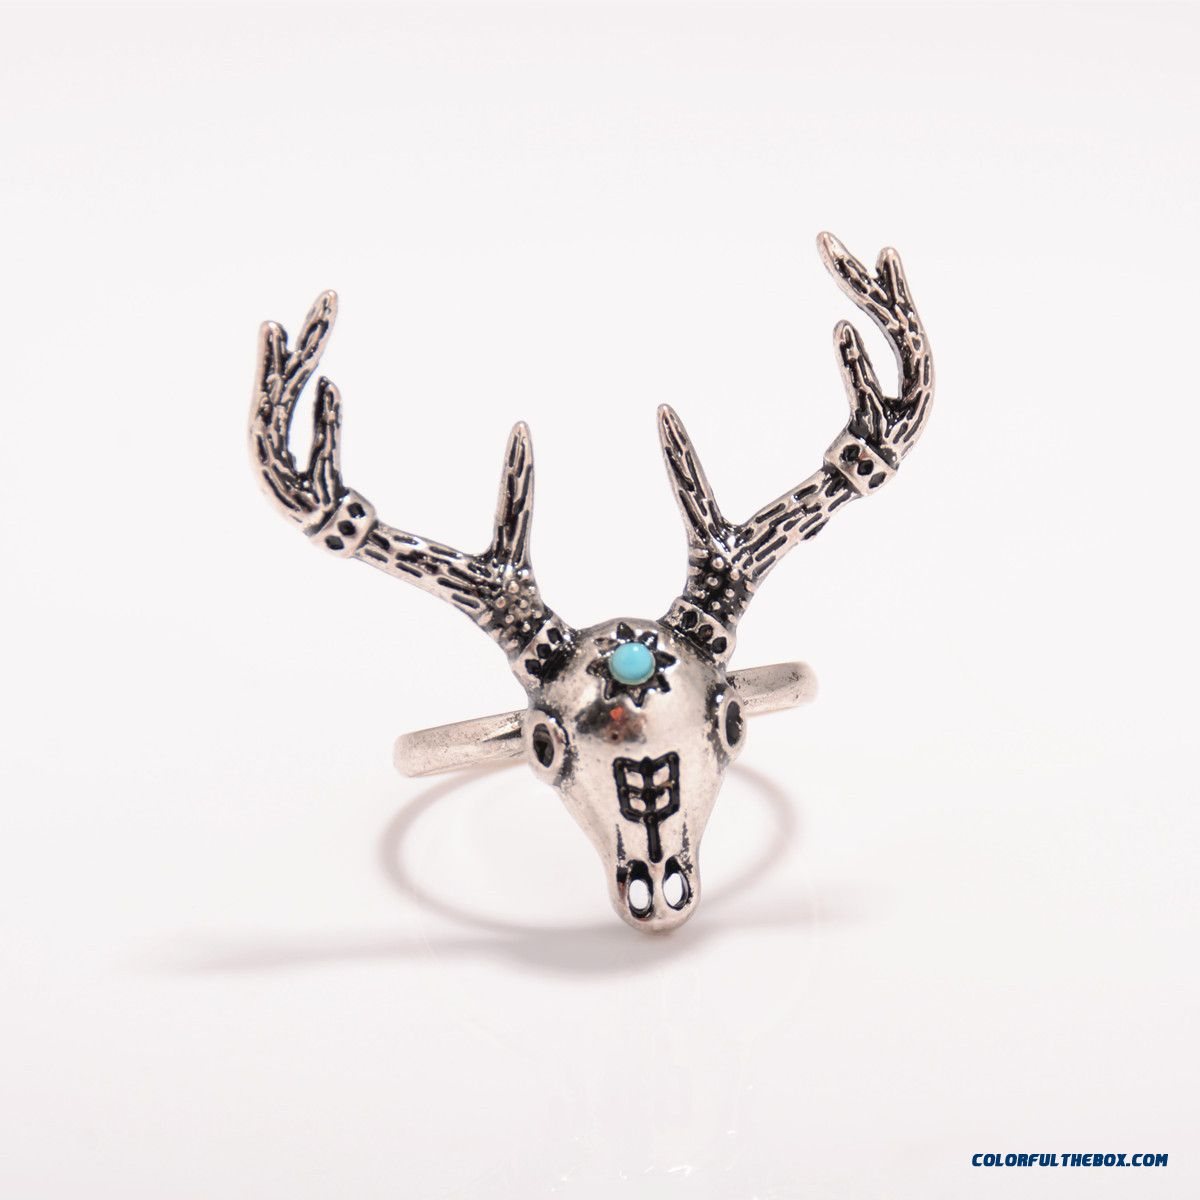 Ethnic Style Metal Heavy Industry Exaggeration Deer Head Ring Jewelry Free Shipping For Women - more images 4